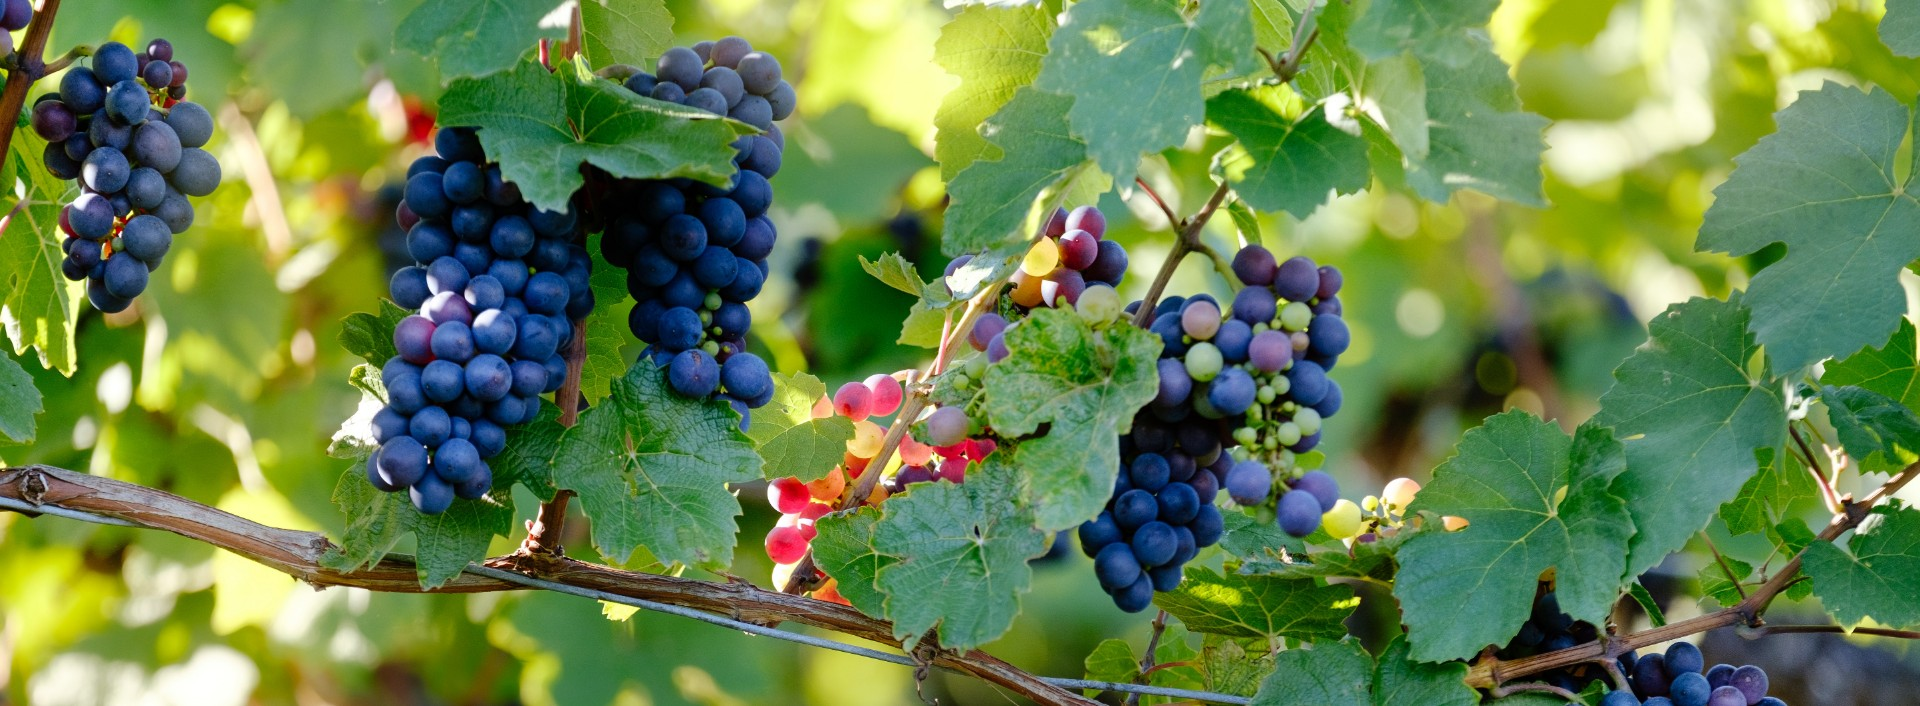 Close up of bunches of red grapes hanging on a vine- common English phrases